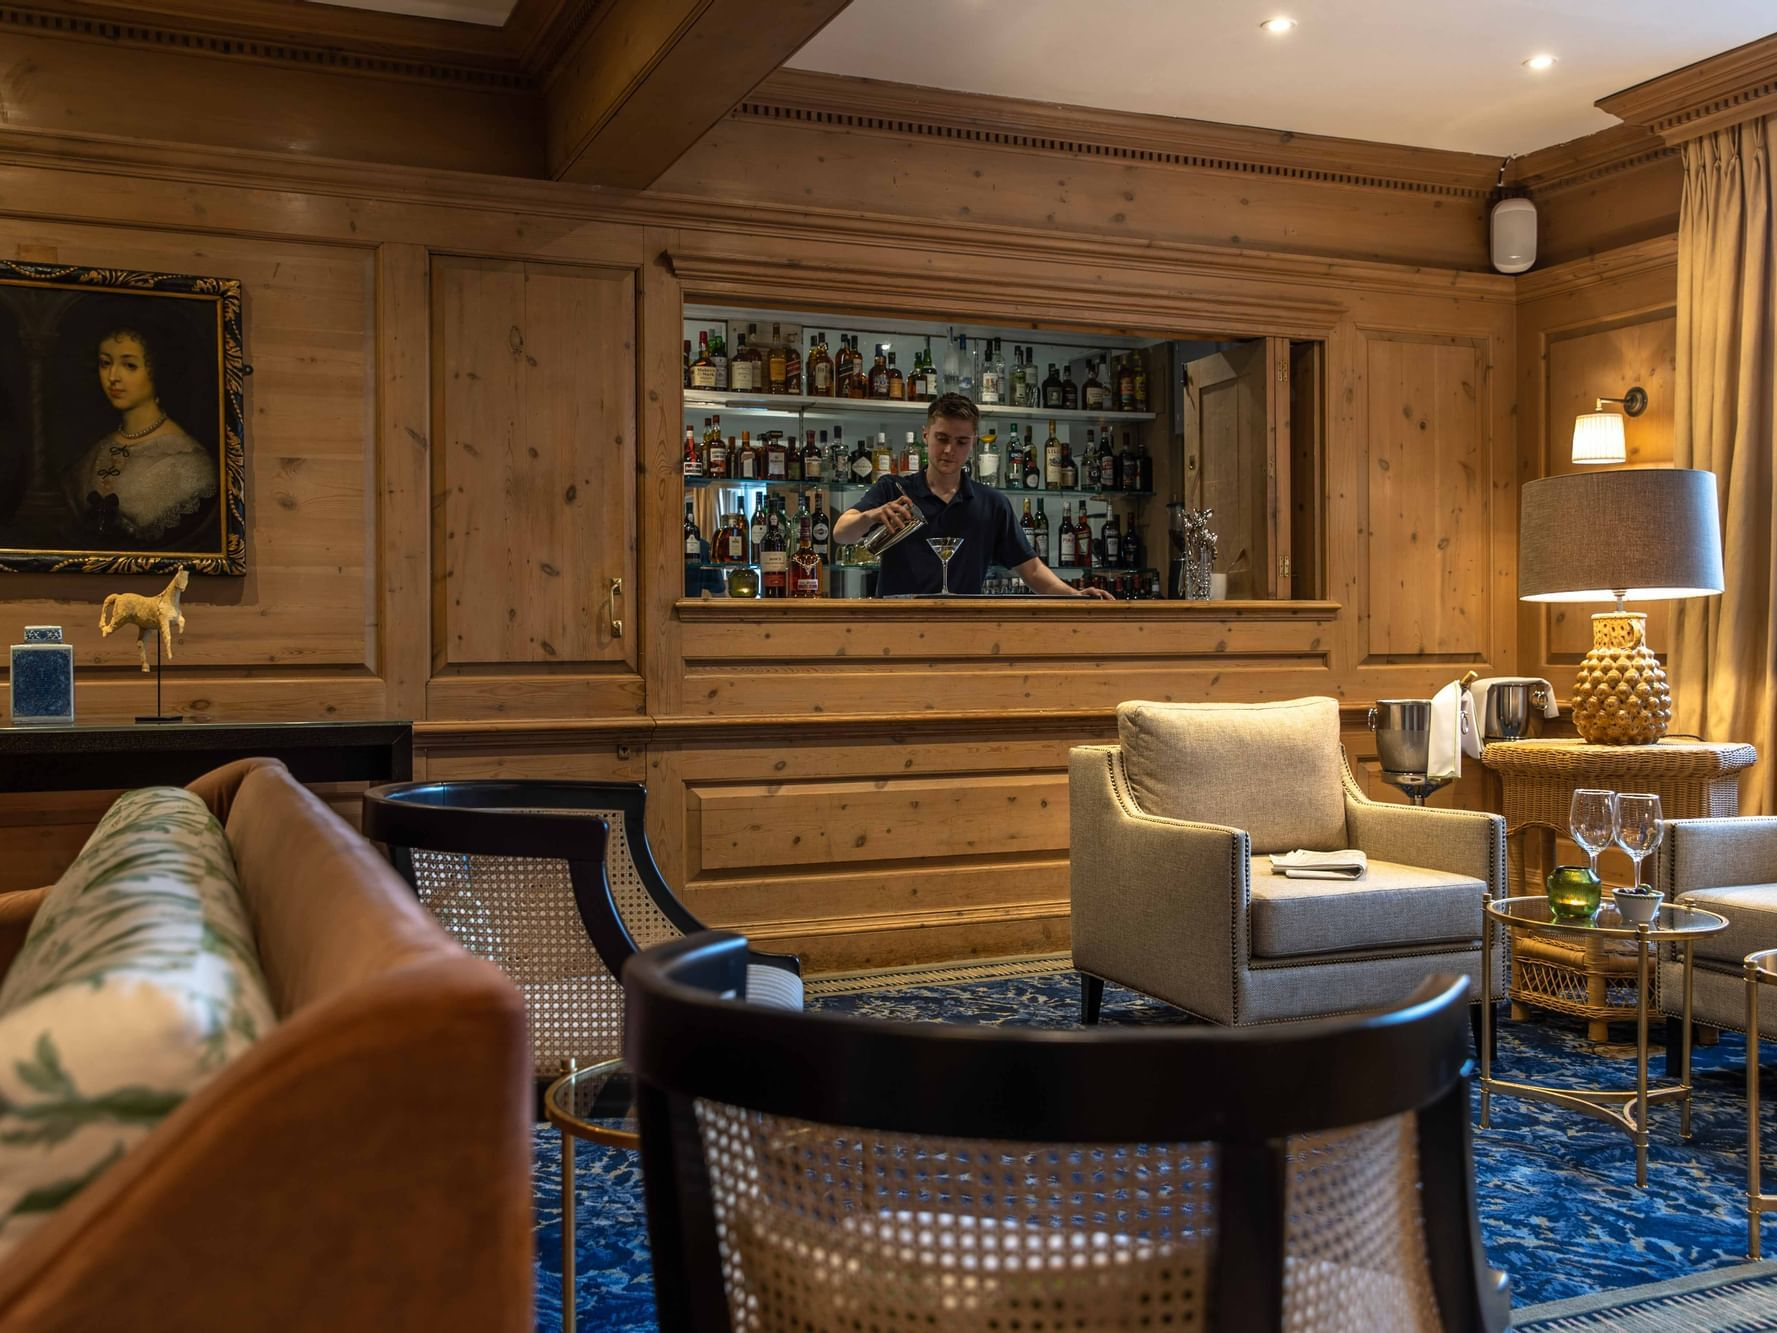 A bartender making drinks in The Clip Bar at The Relais Henley